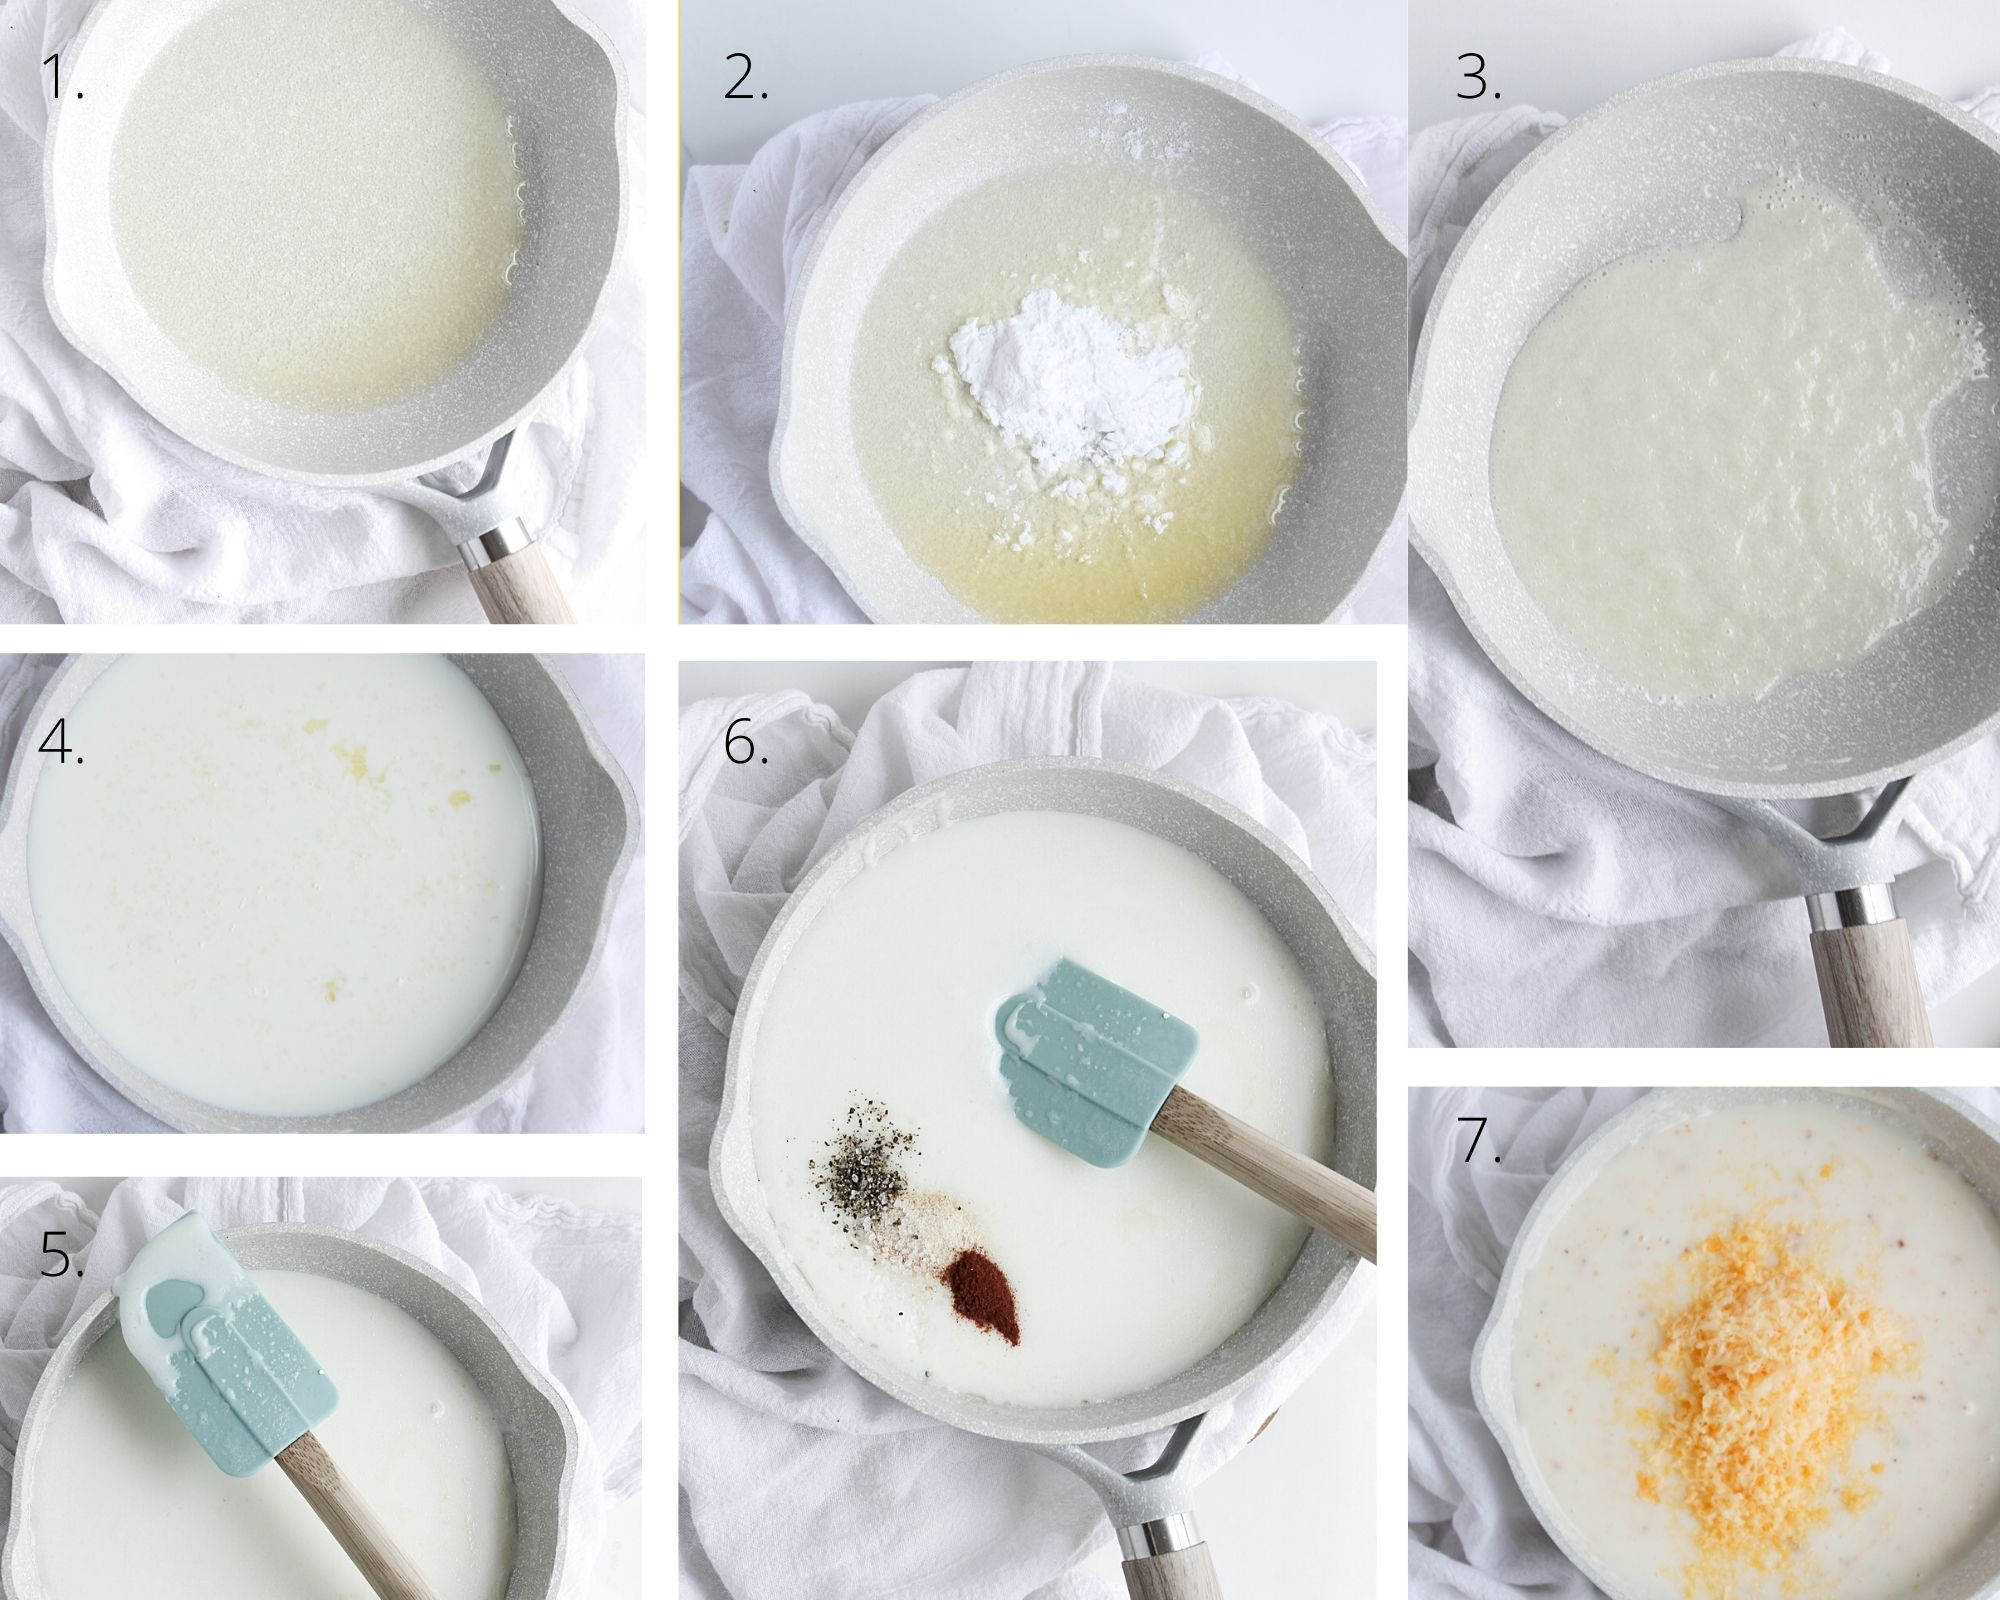 Steps for making gluten-free cheddar cheese sauce for veggies including making the roux, adding the liquid, adding the spices, bring it all together with the shredded cheddar